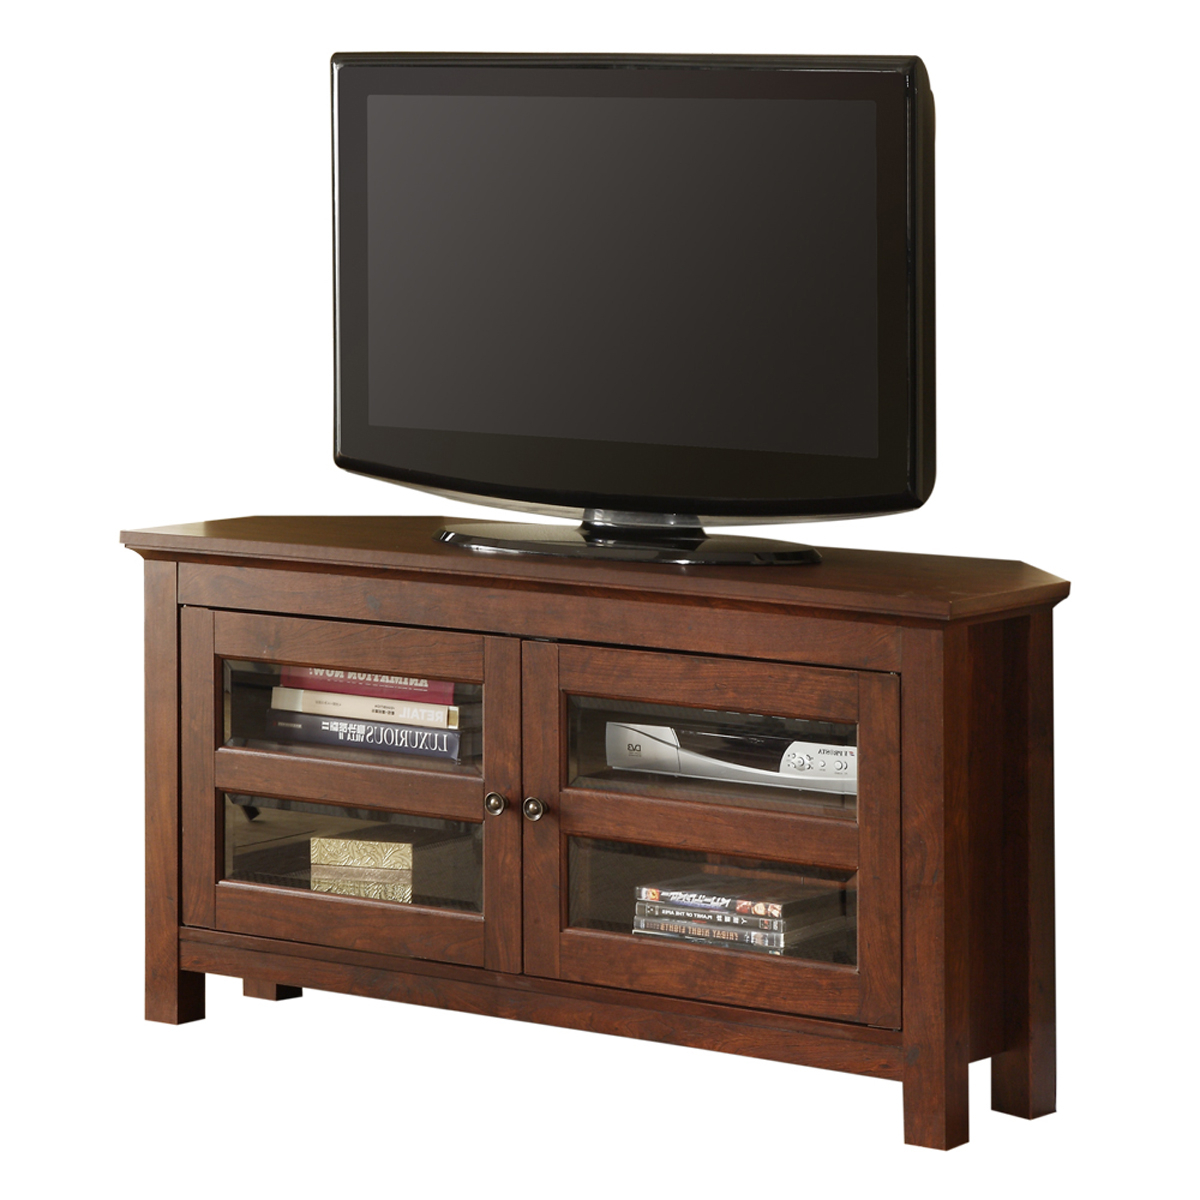 Preferred Wooden Corner Tv Stand With Small Cabinet Doors And Silver Handle Inside Corner Tv Unit With Glass Doors (View 12 of 20)